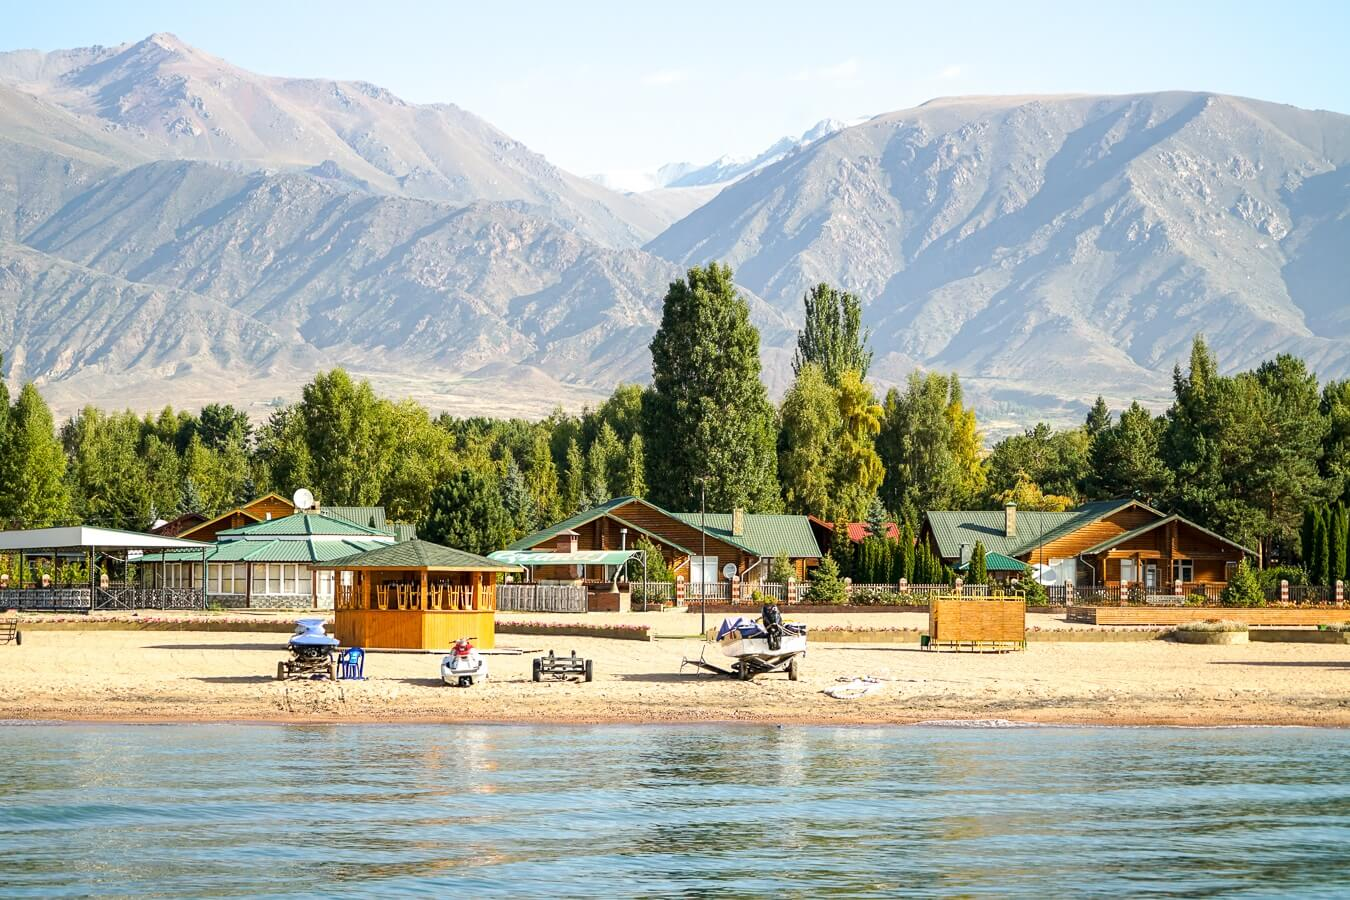 Issyk Kul lake is one of the top places to see in Kyrgyzstan